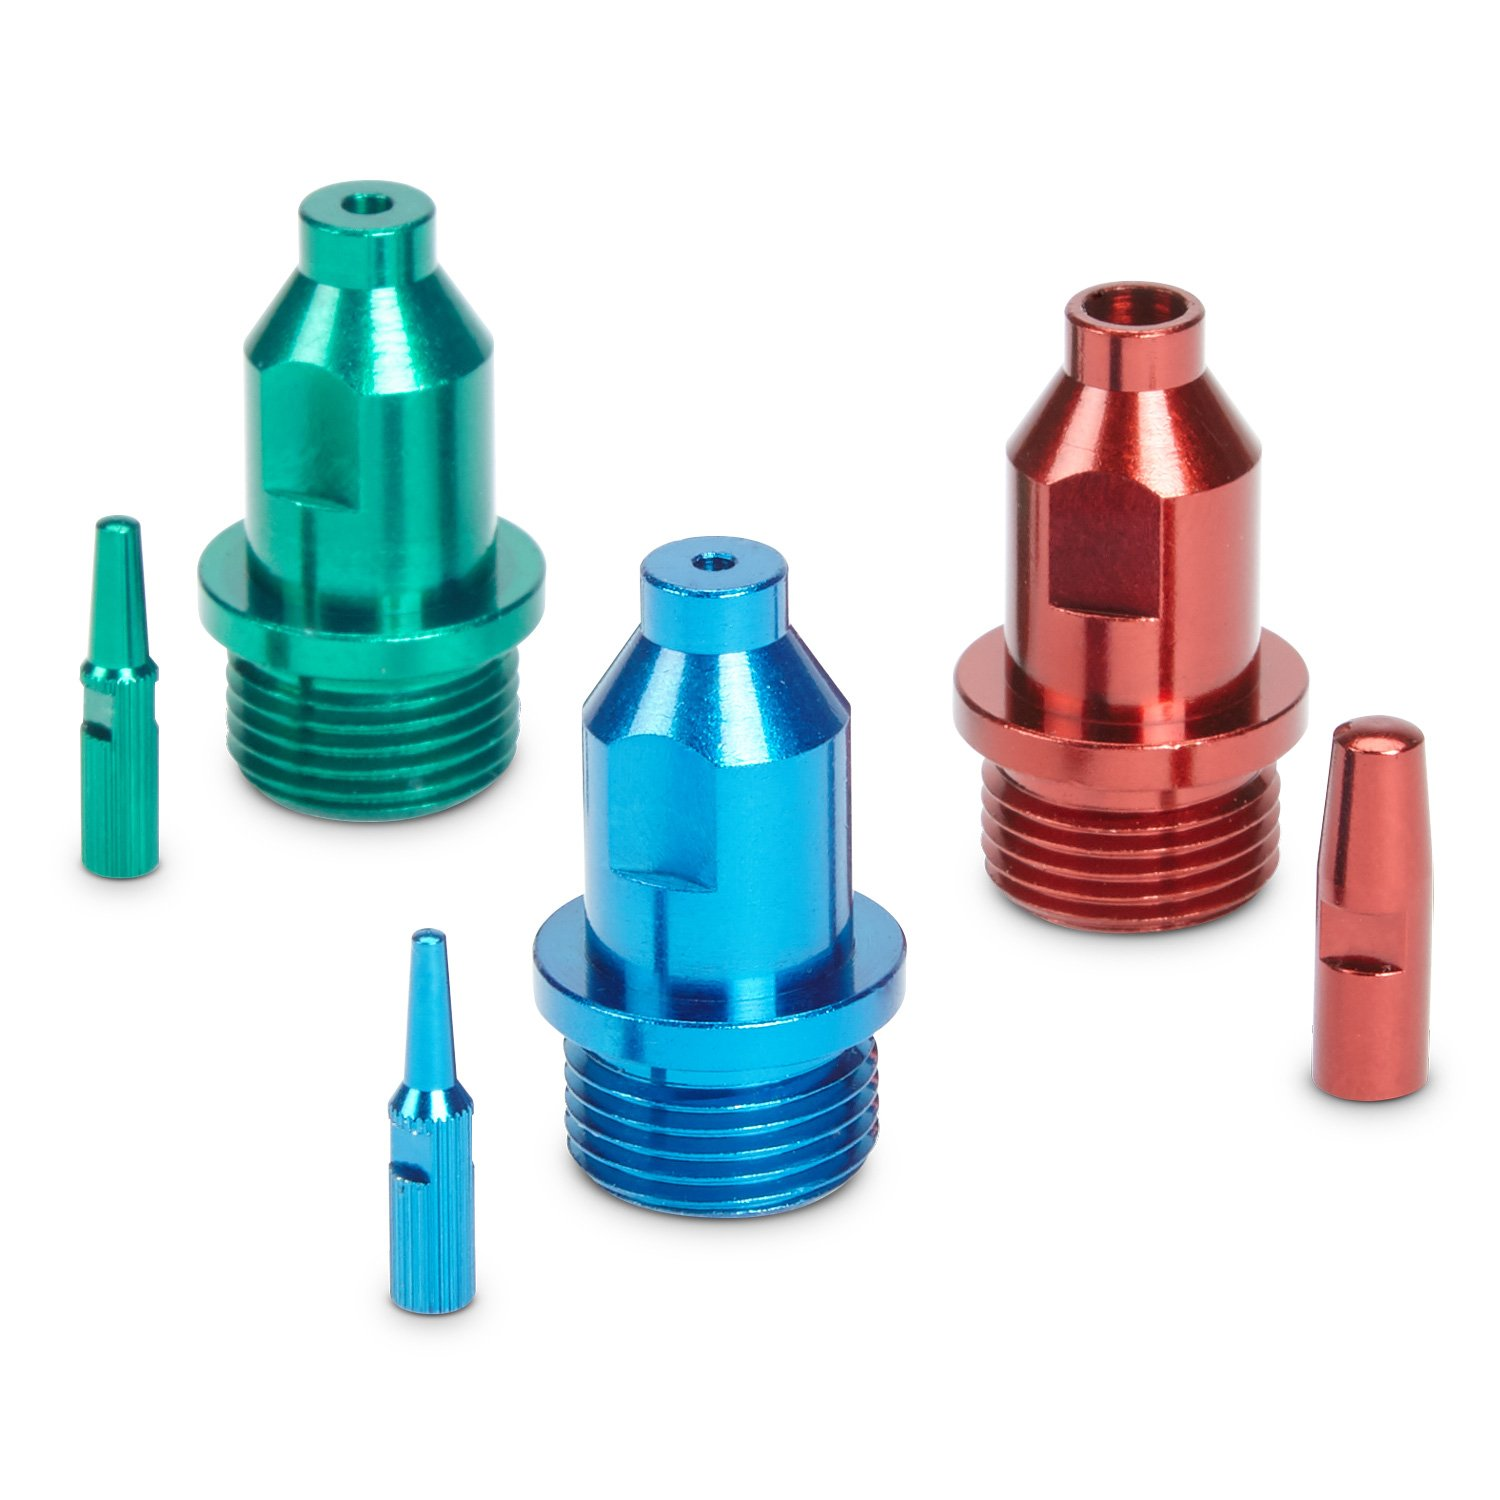 Homeright C900111 Spray Tip Multi Pack for Super Finish Max (Red, Green & Blue)